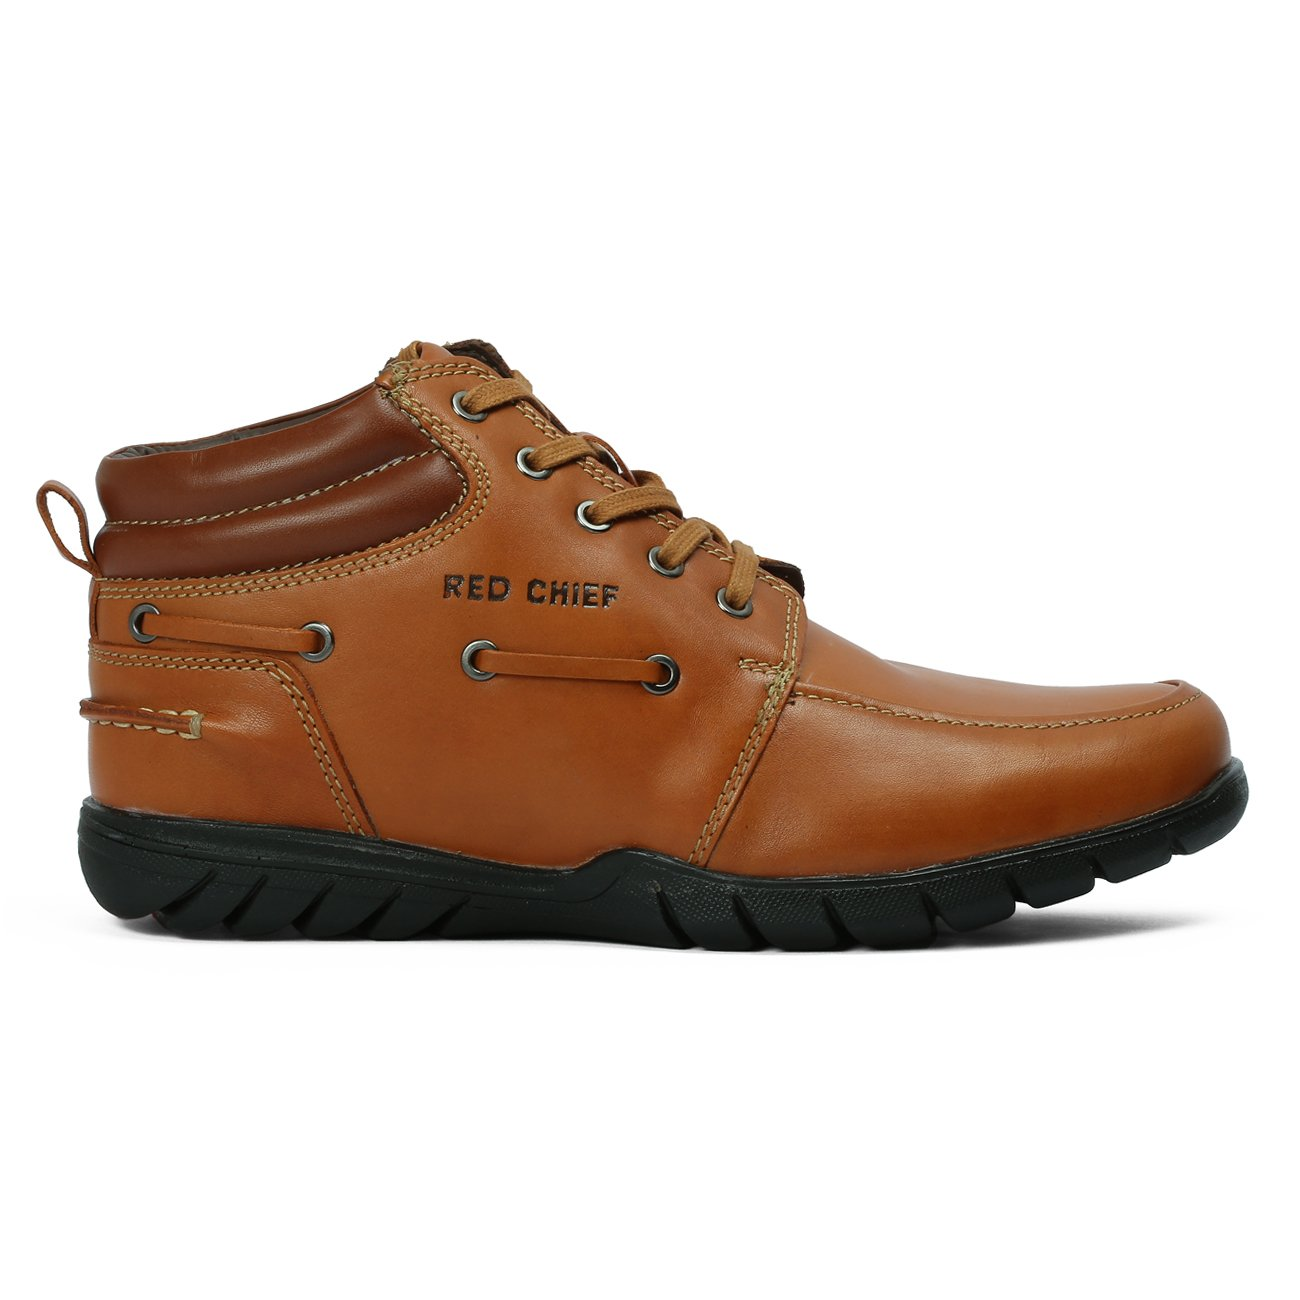 red chief shoes Online Shopping for